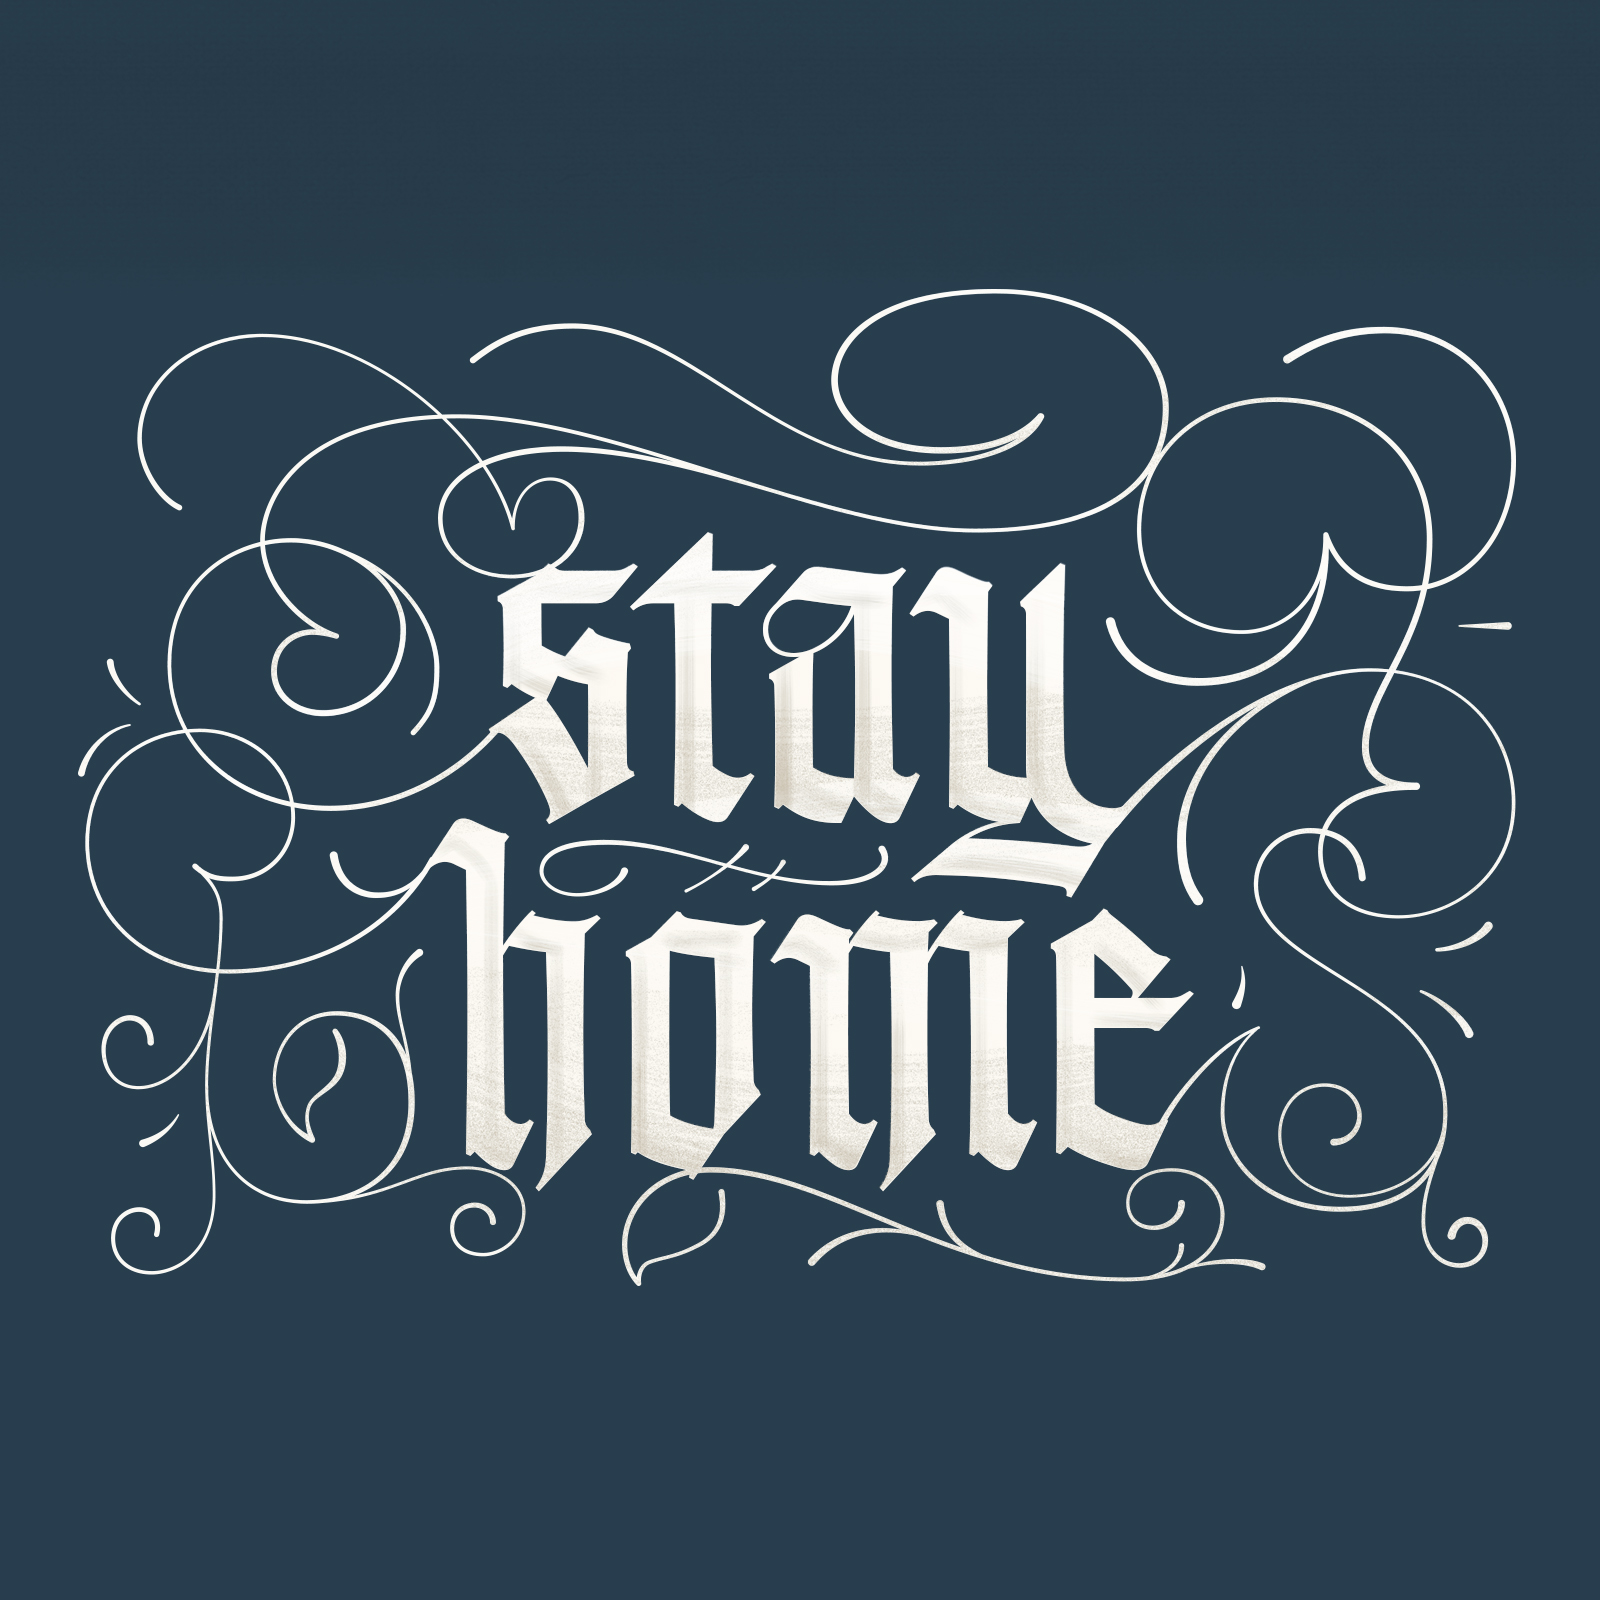 Stay Home - Renan Torres